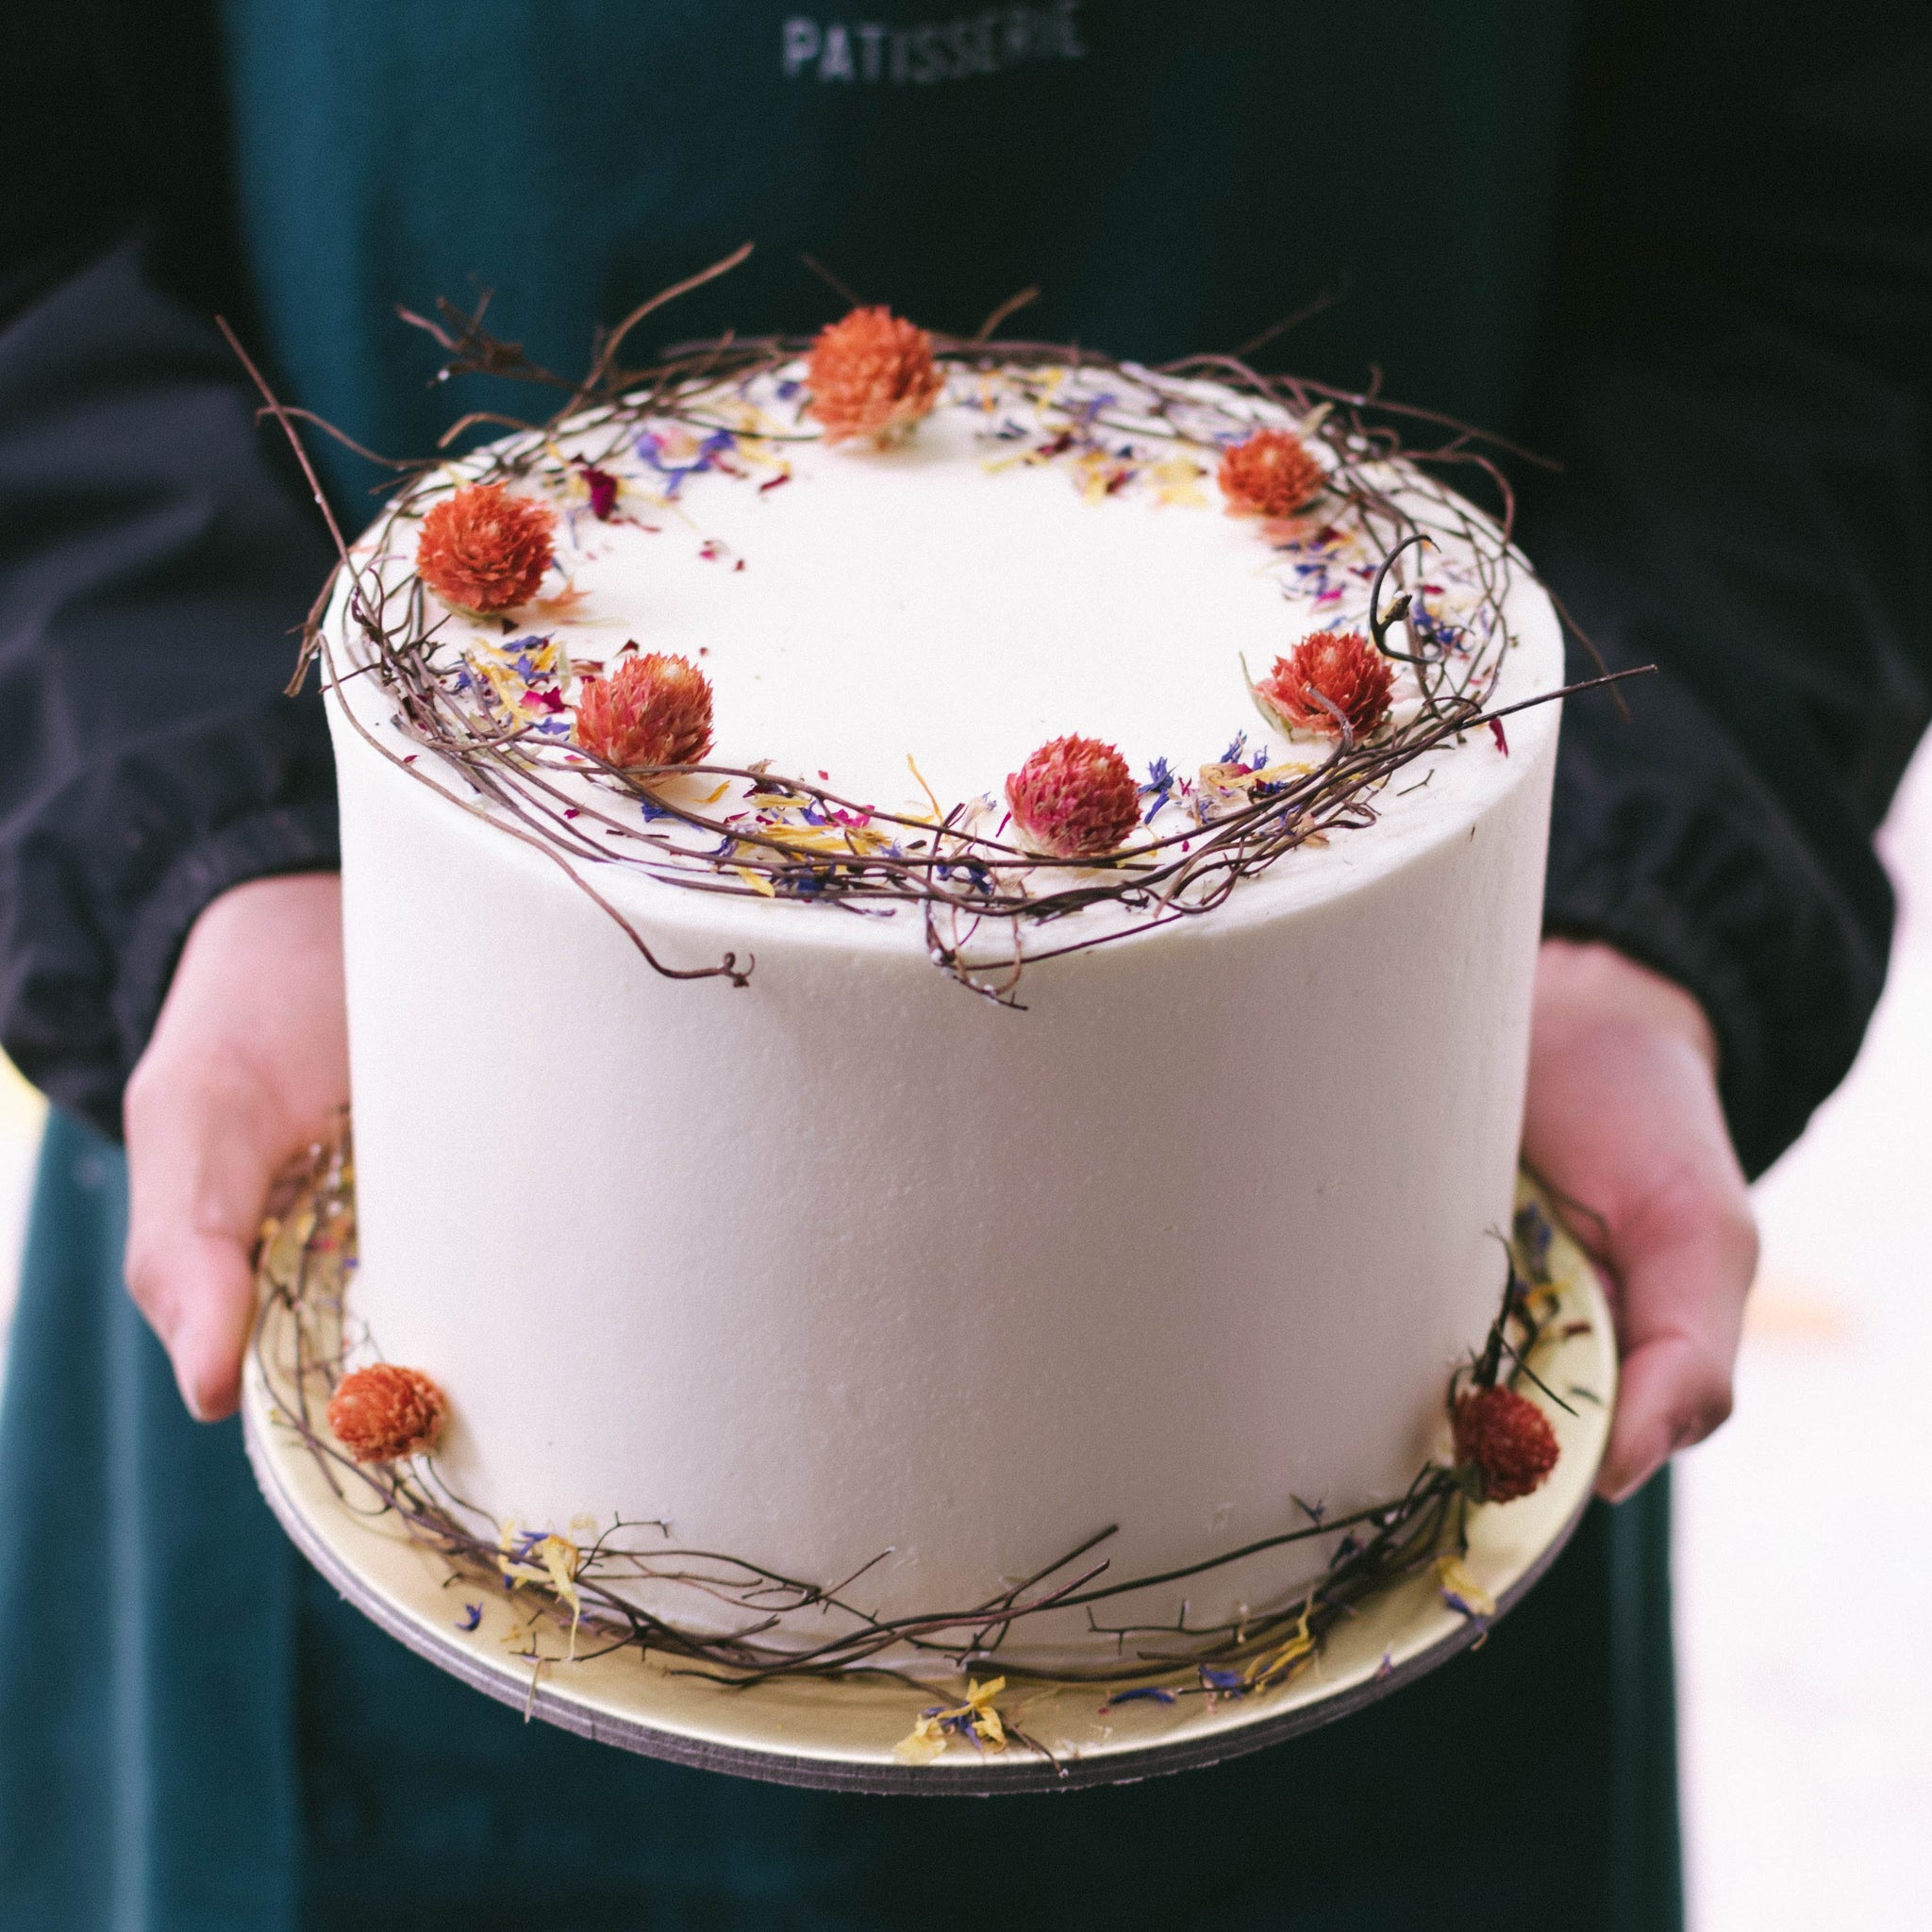 Rustic Twig and Edible Florals Cake - Custom Bakes by Edith Patisserie